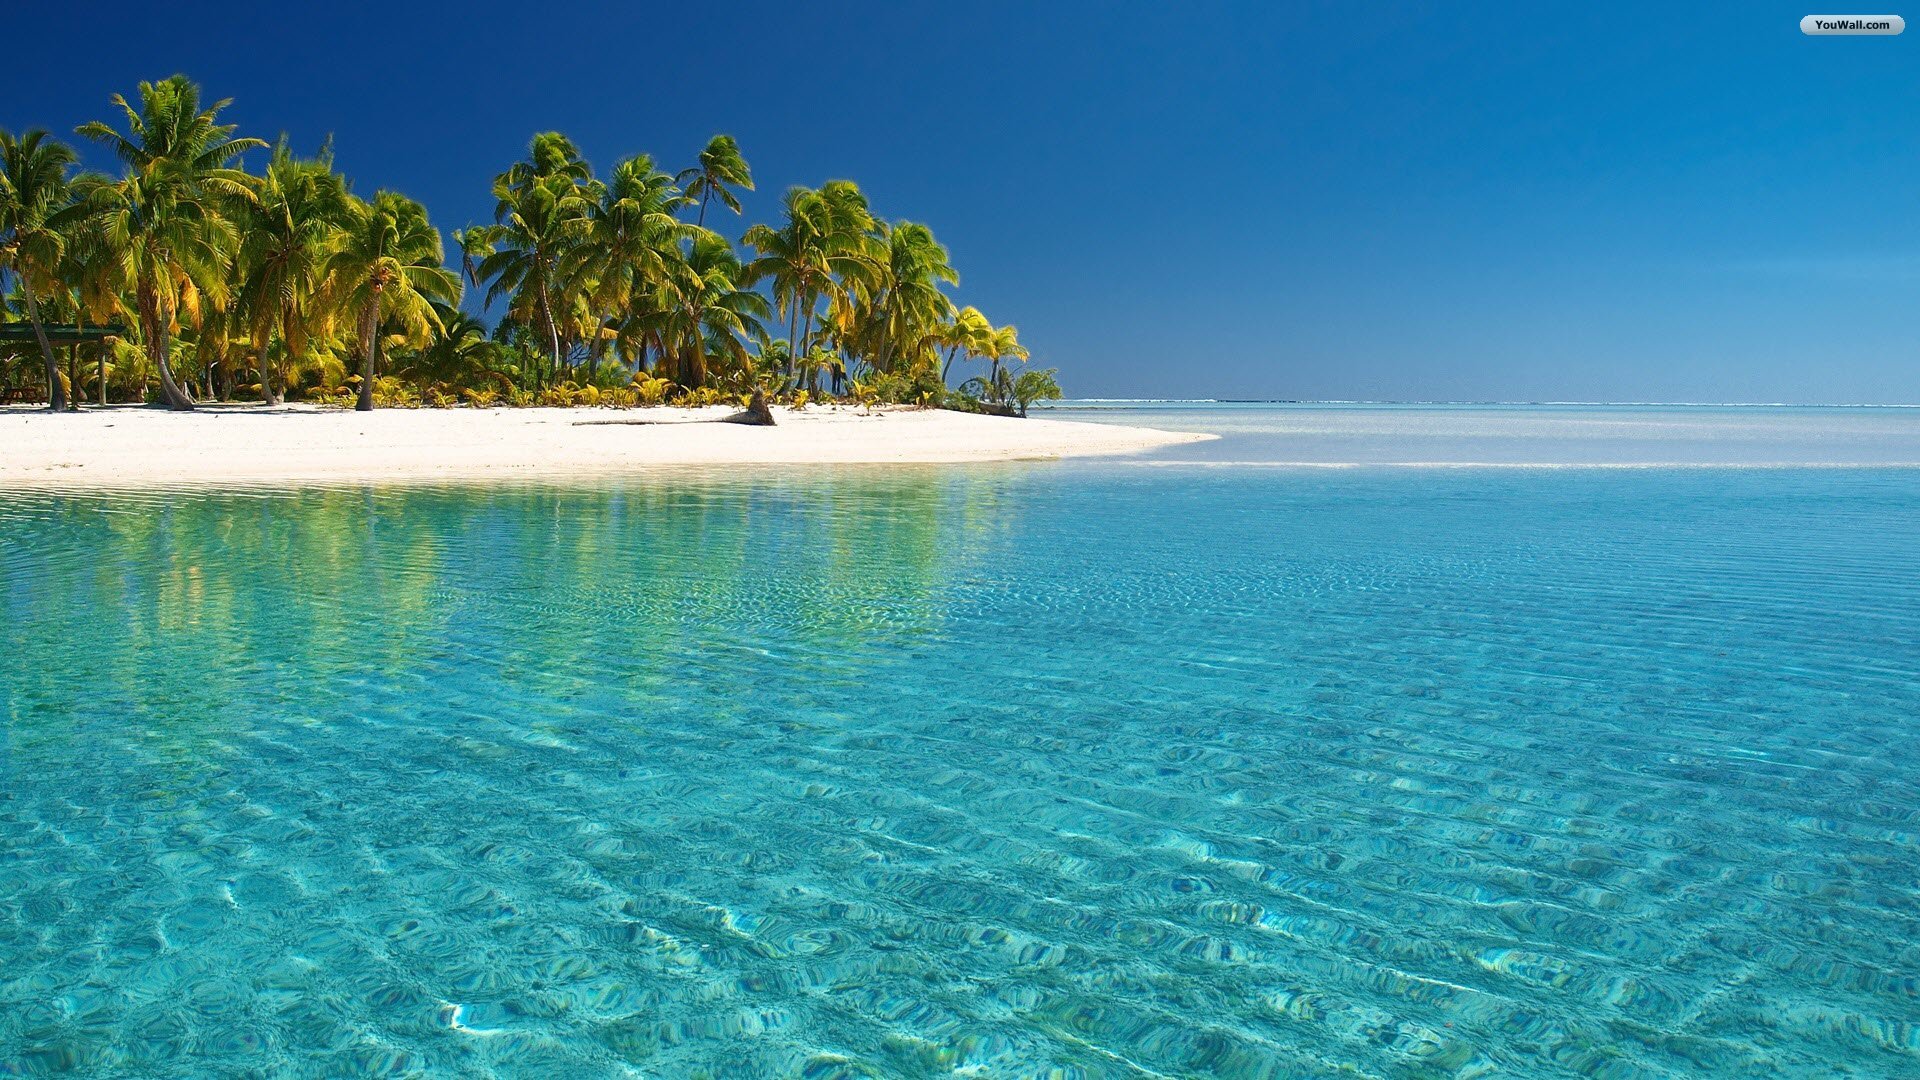 beach tropical wallpapers paradise island glass wallpaper water 1920x1080